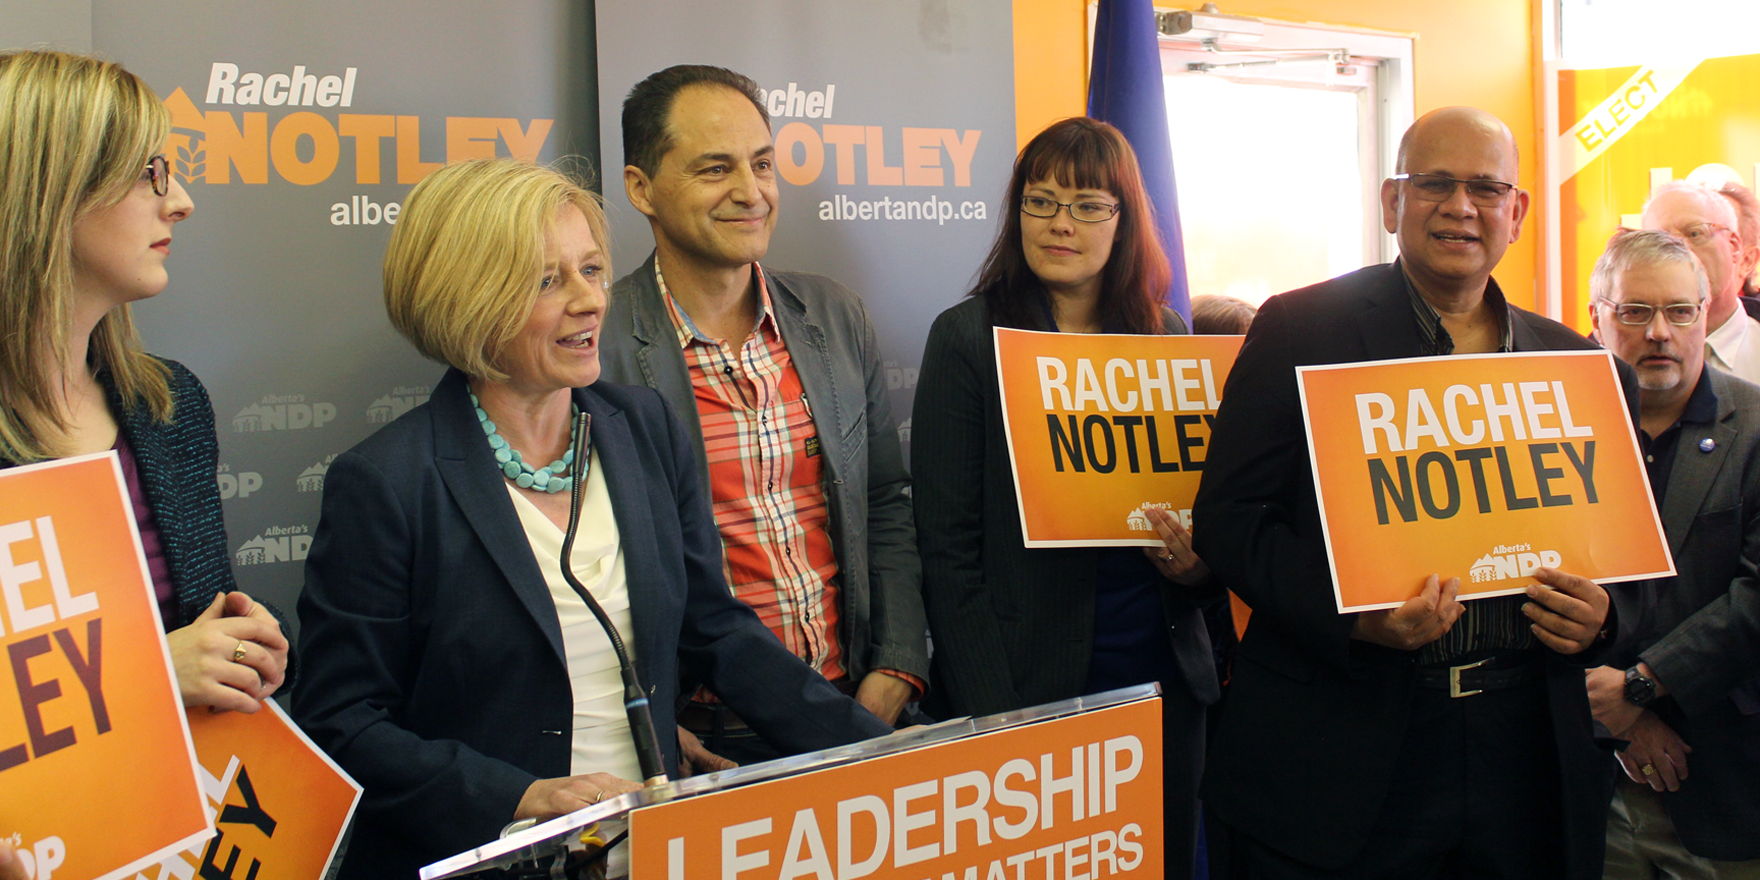 NDP Momentum Continues to Grow in Calgary: Notley